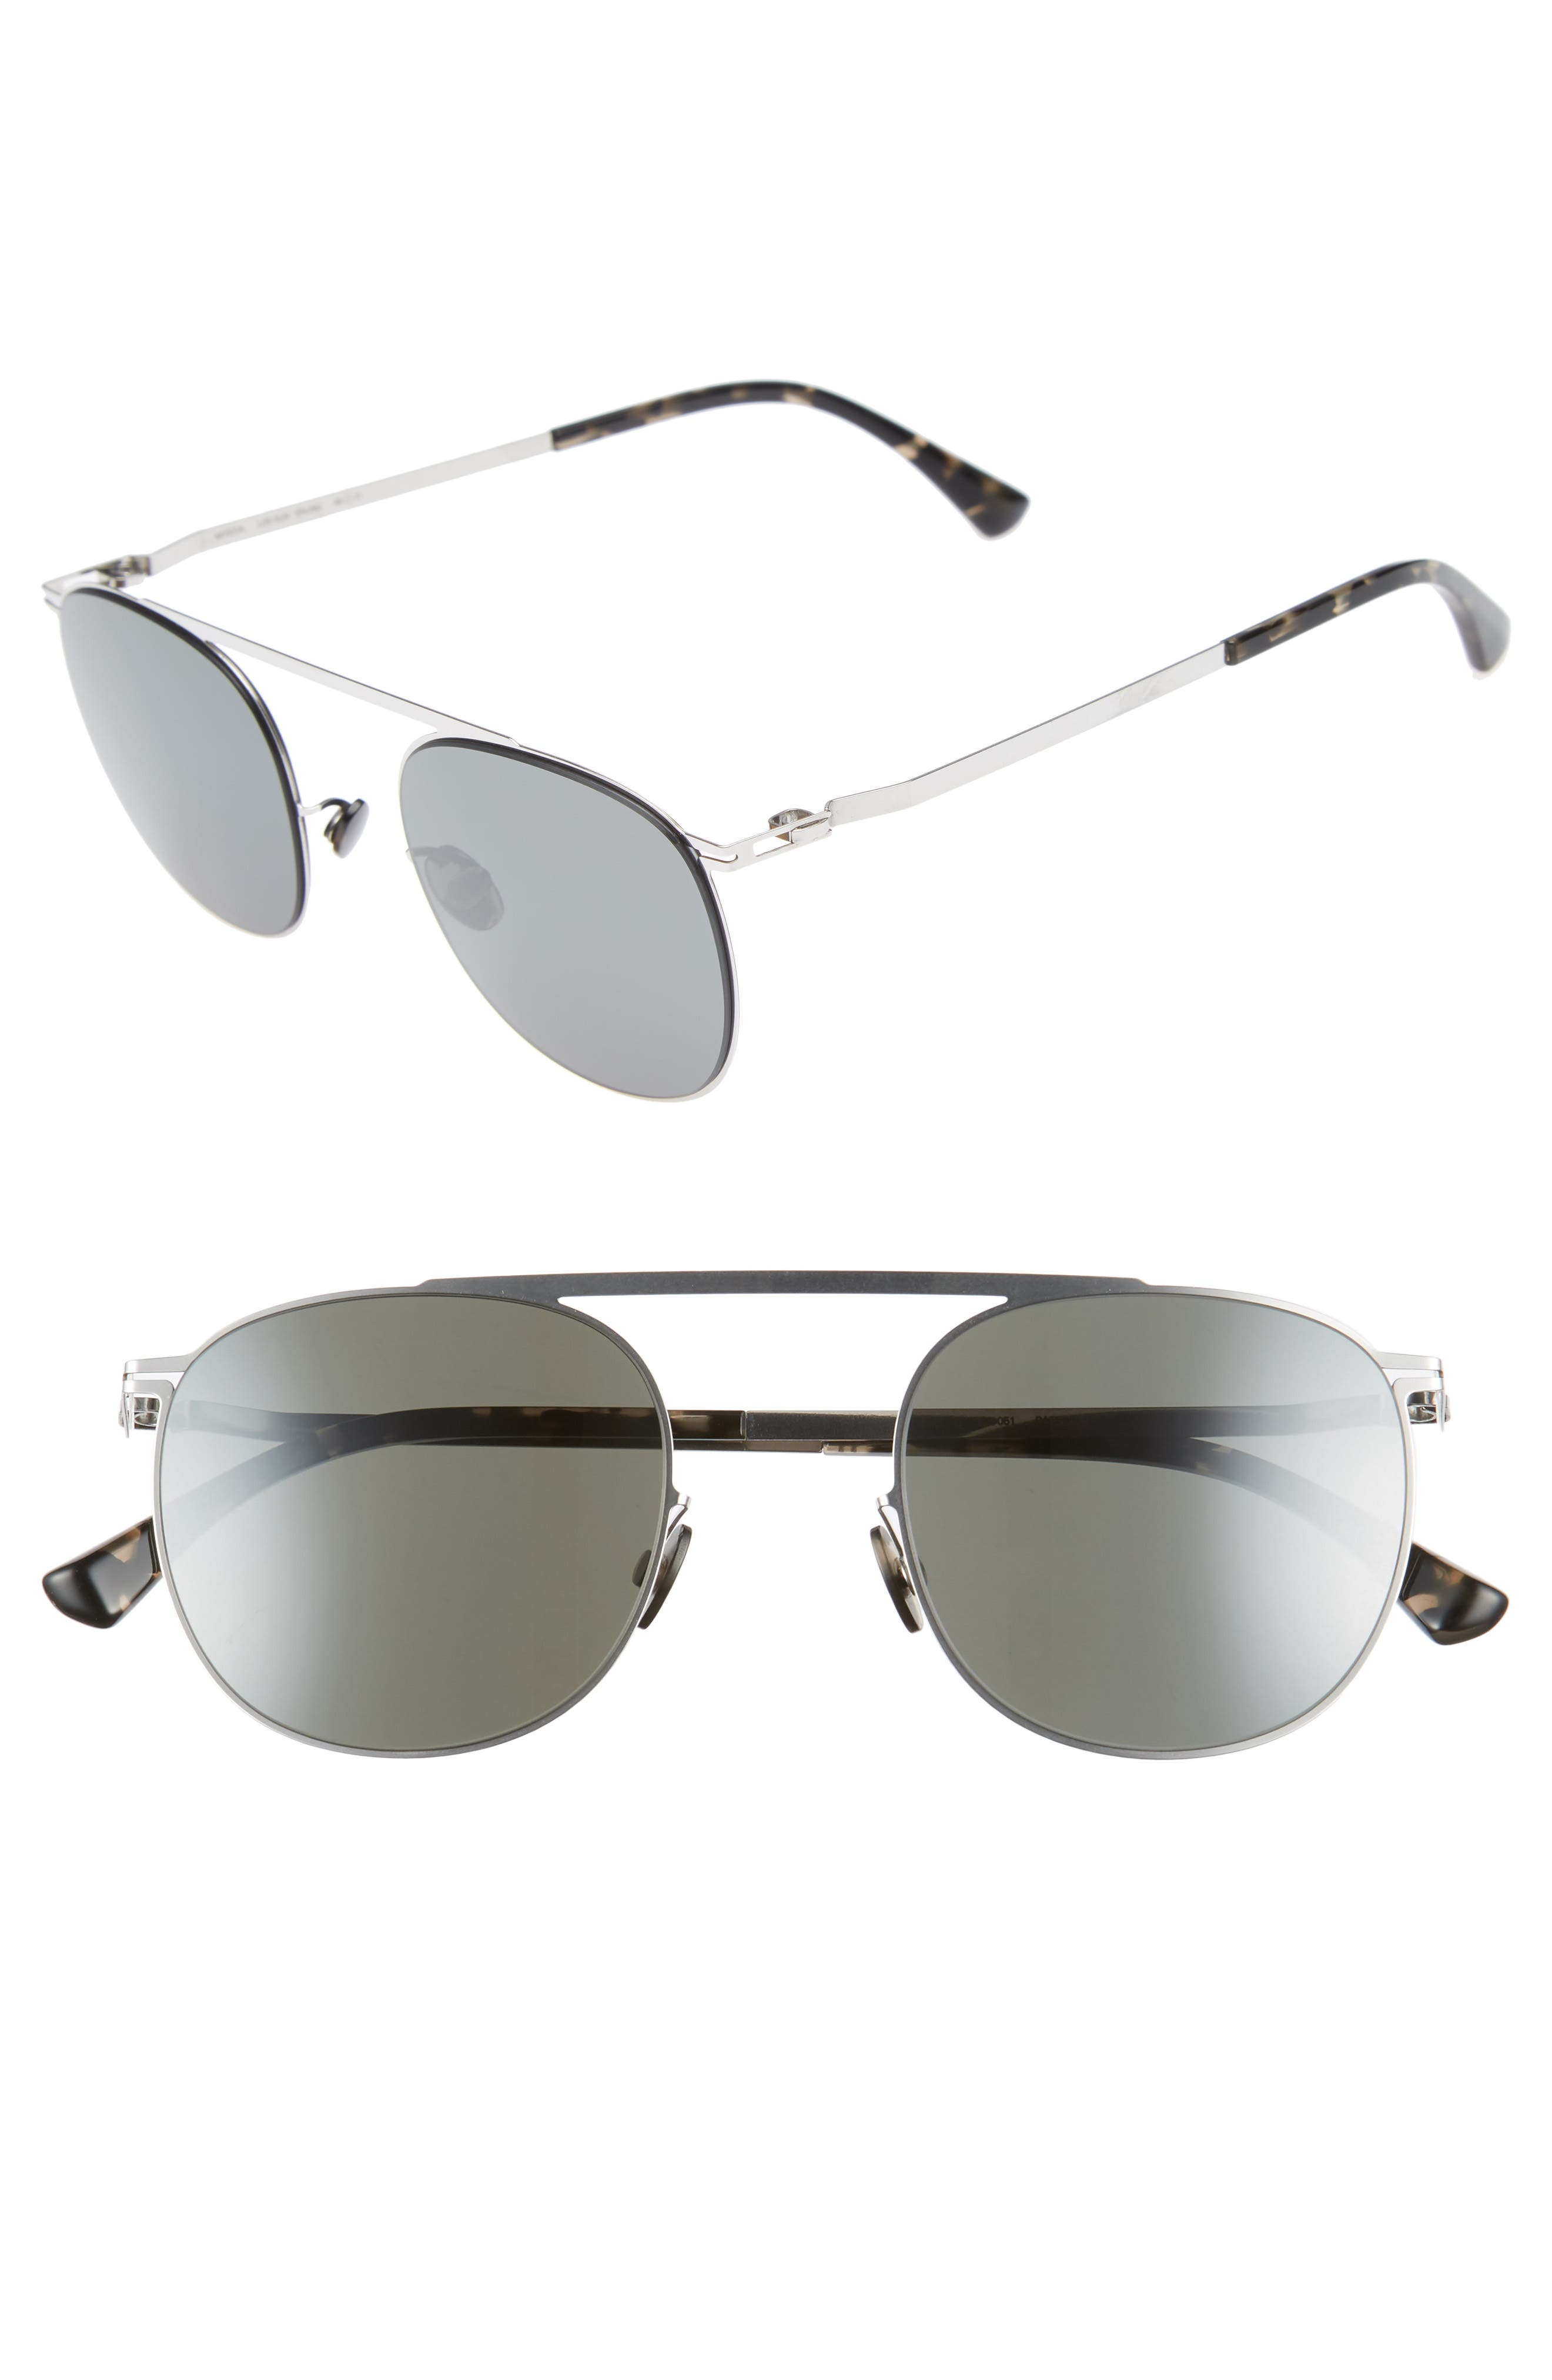 Erling 48mm Mirrored Sunglasses,                             Main thumbnail 1, color,                             041